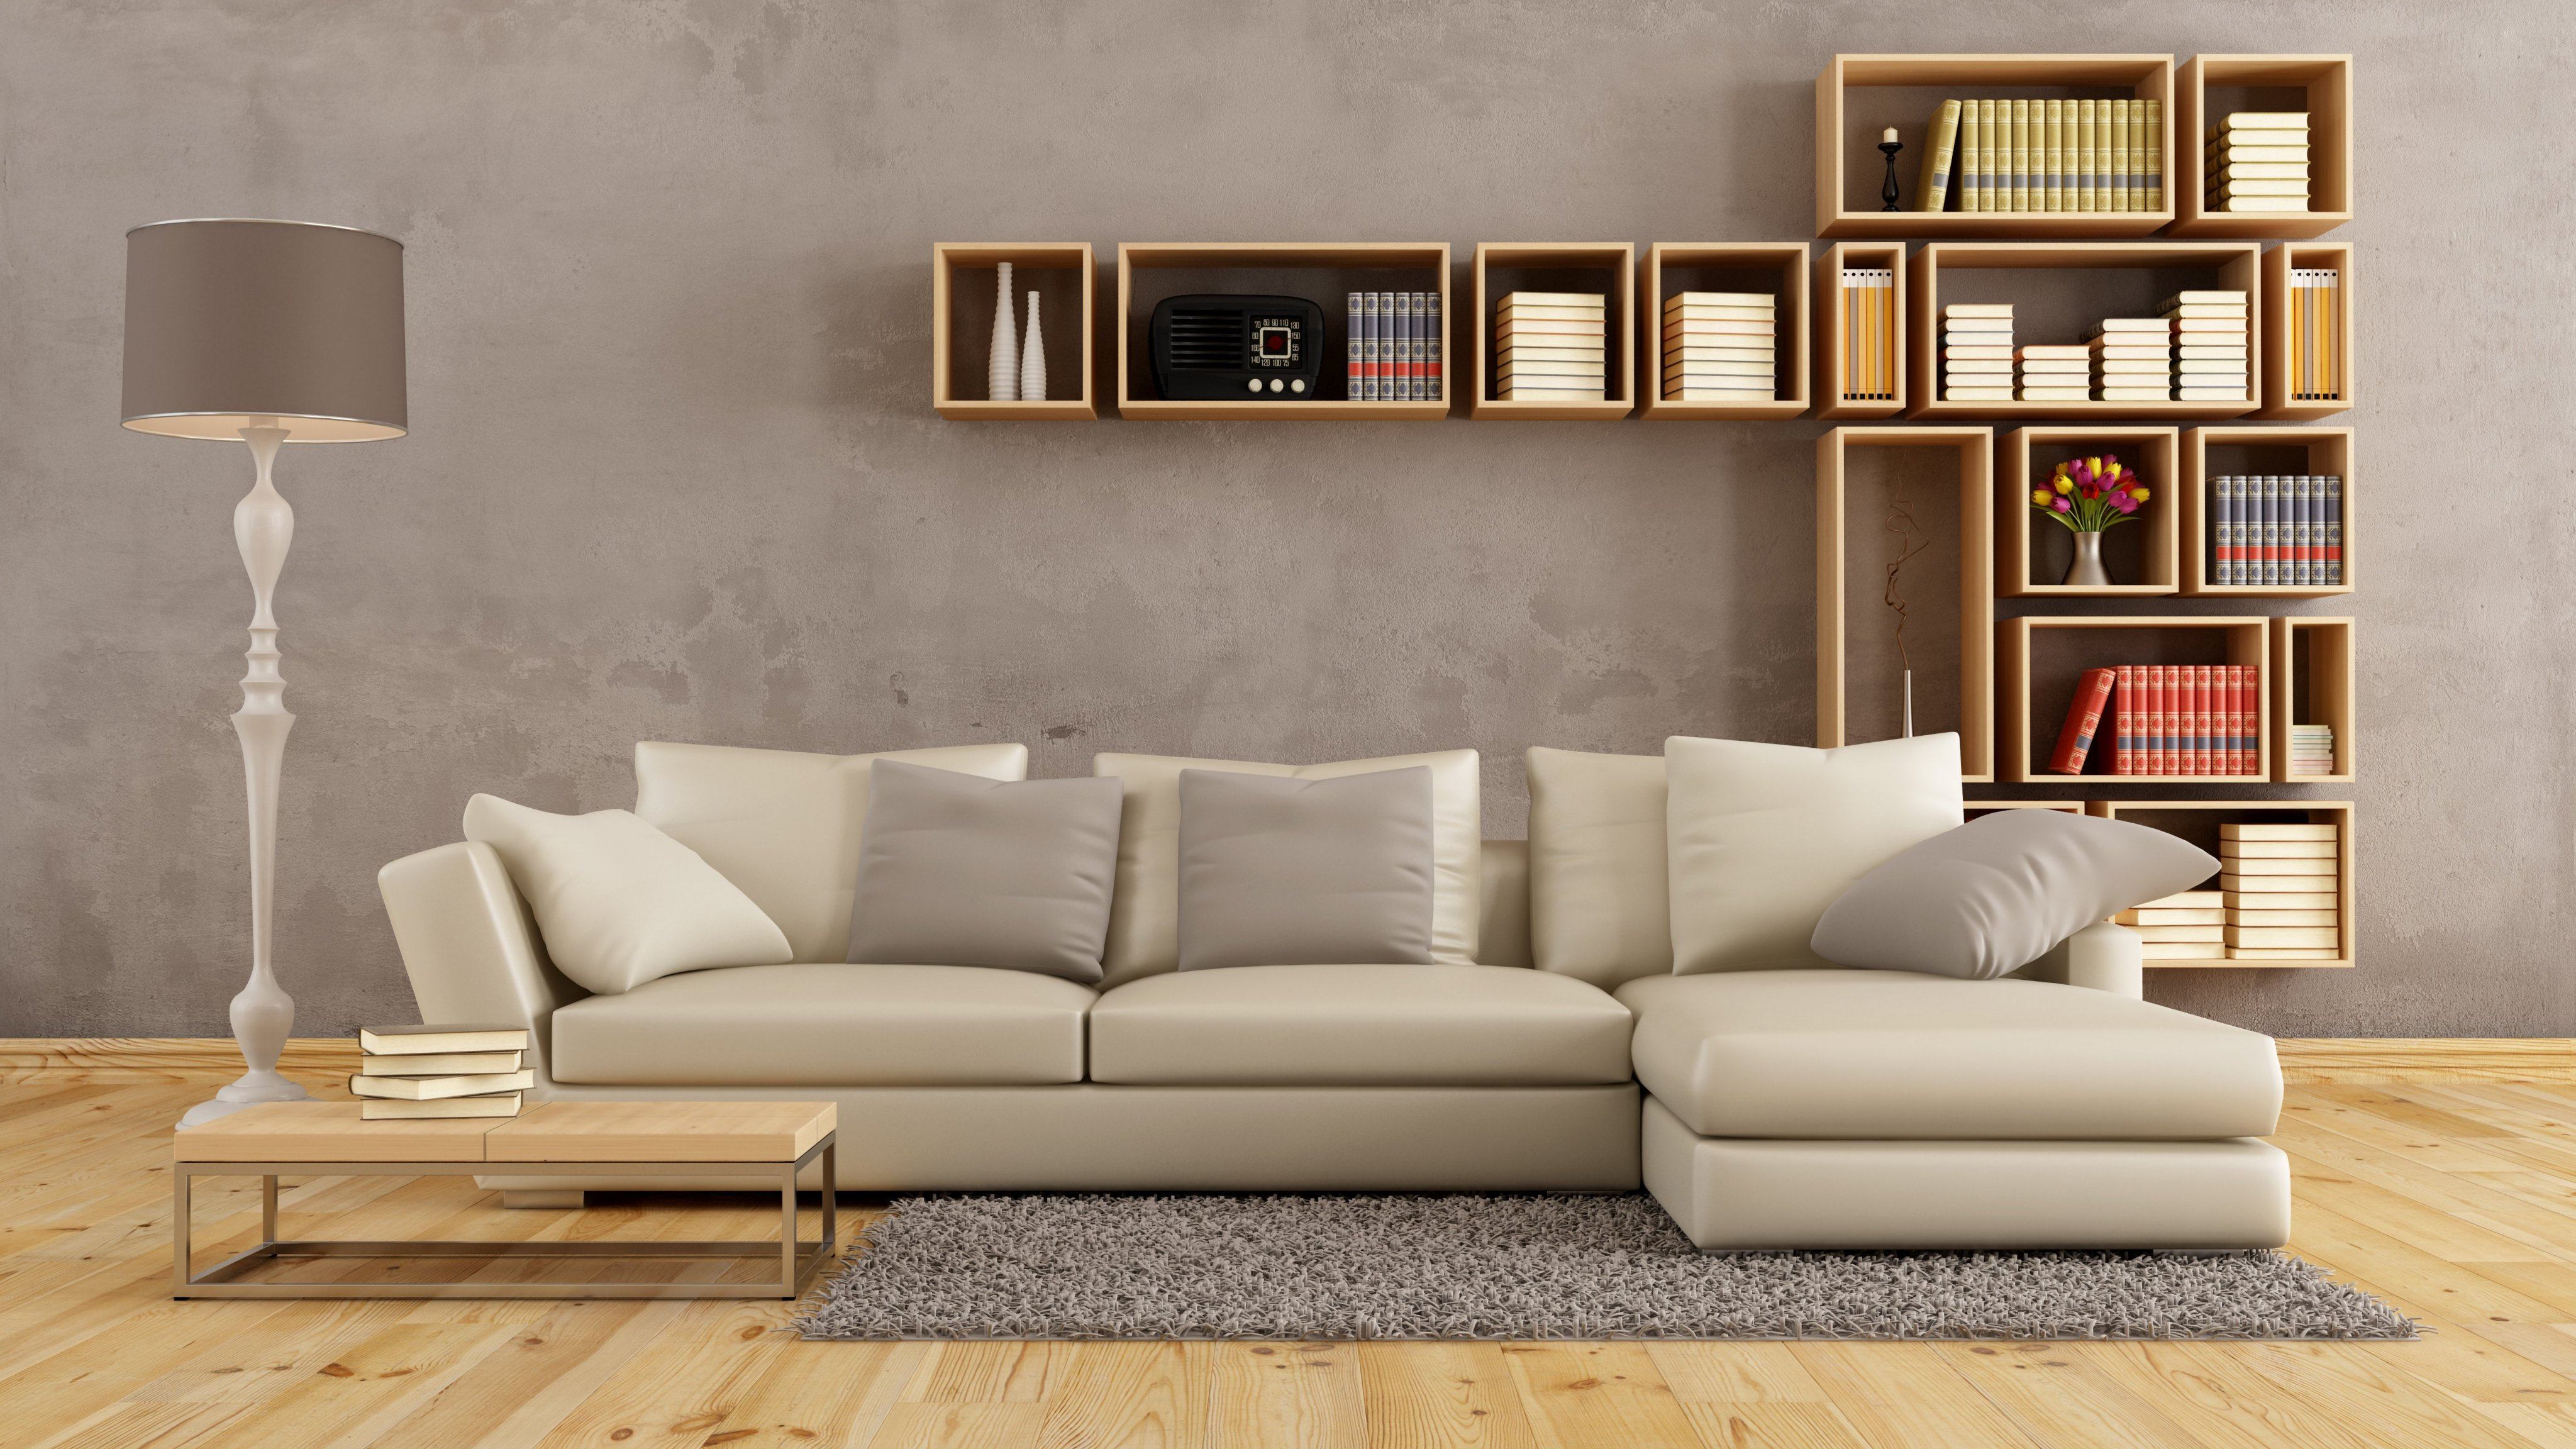 2268240696-421701-couch-interior-lamb-library-living-room-lounge-modern-pillows-sofa-stylish-stylish